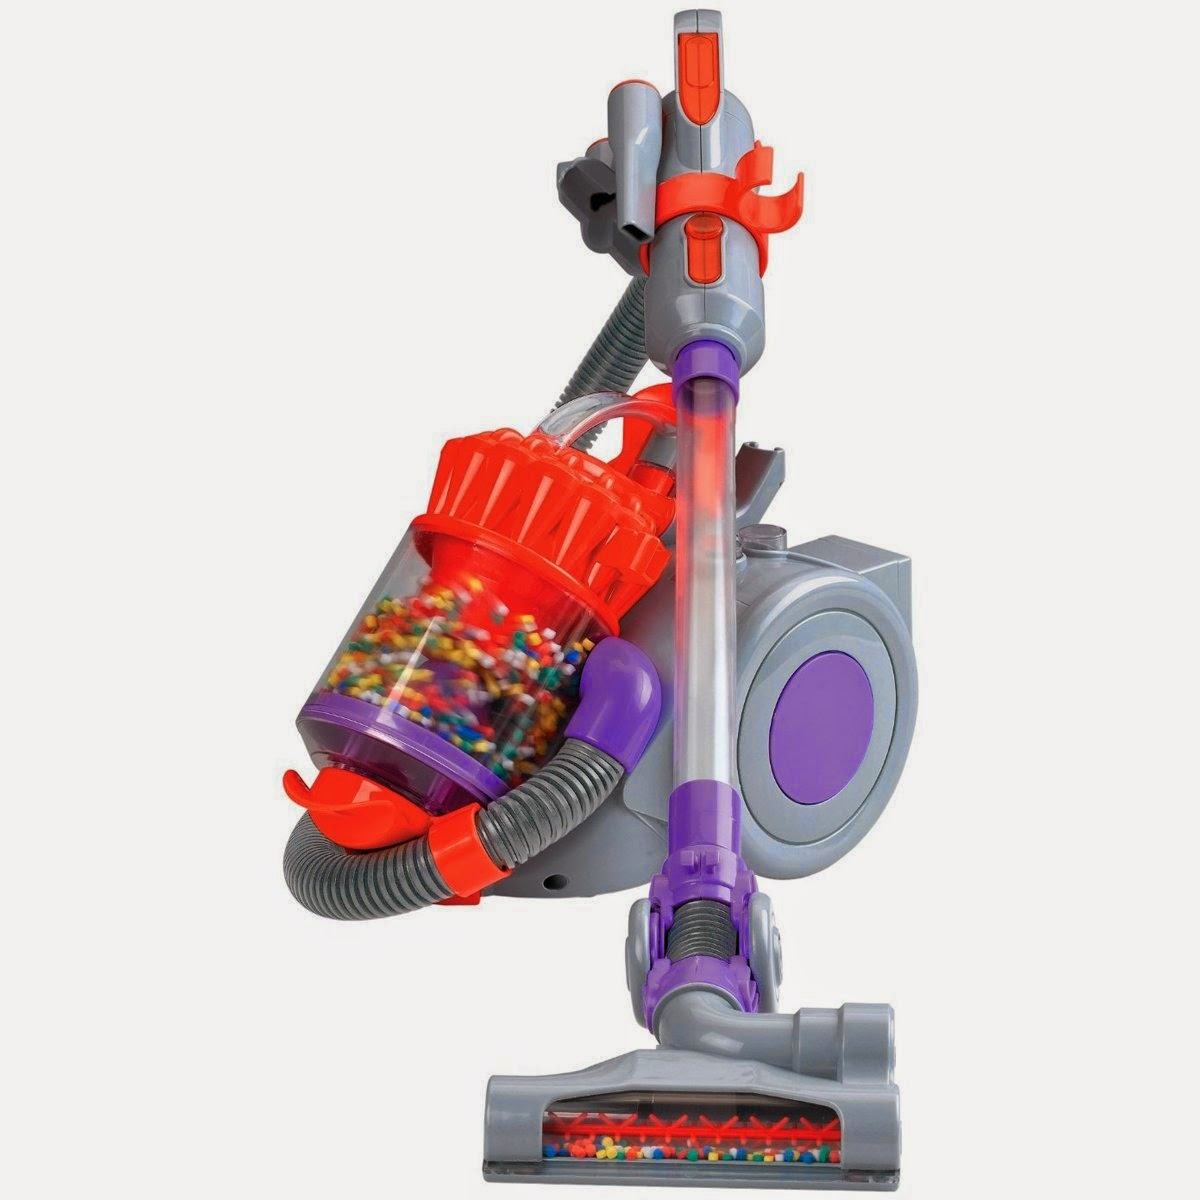 Just Like Home Toy Vacuum : Toy vacuum cleaner